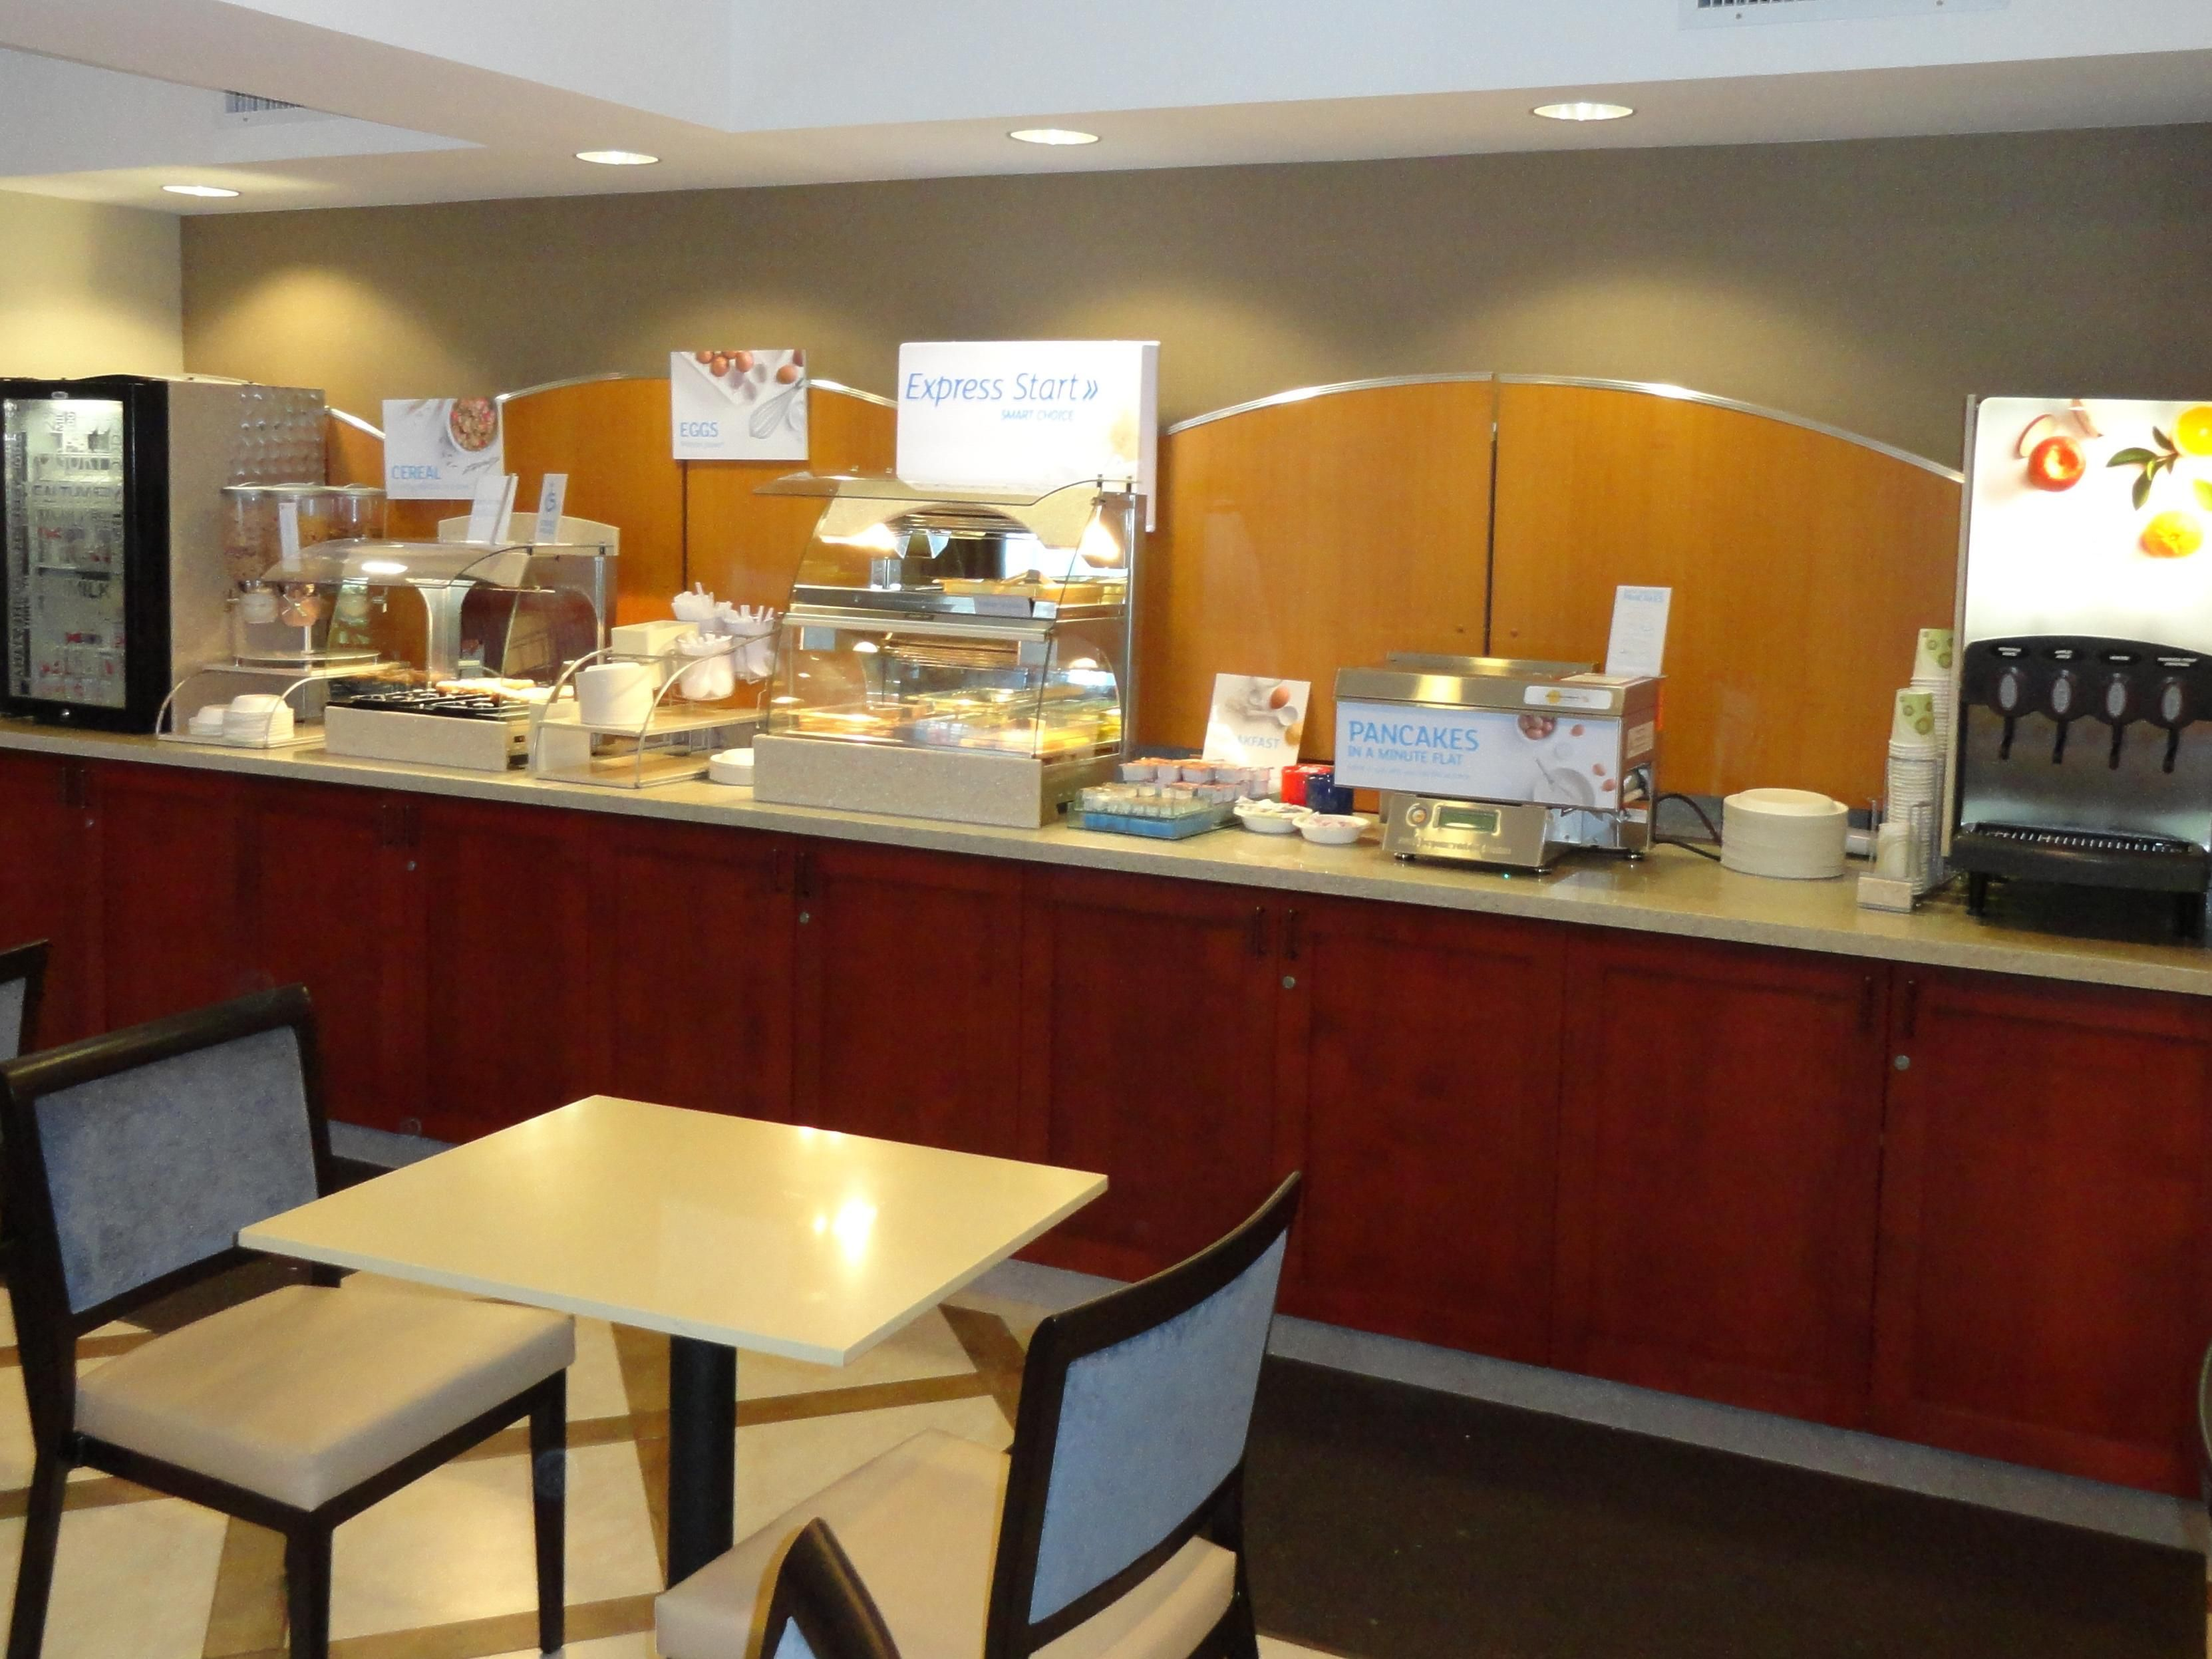 Complimentary Hot Breakfast-Eggs, Pancakes, Meat, Juice, & More